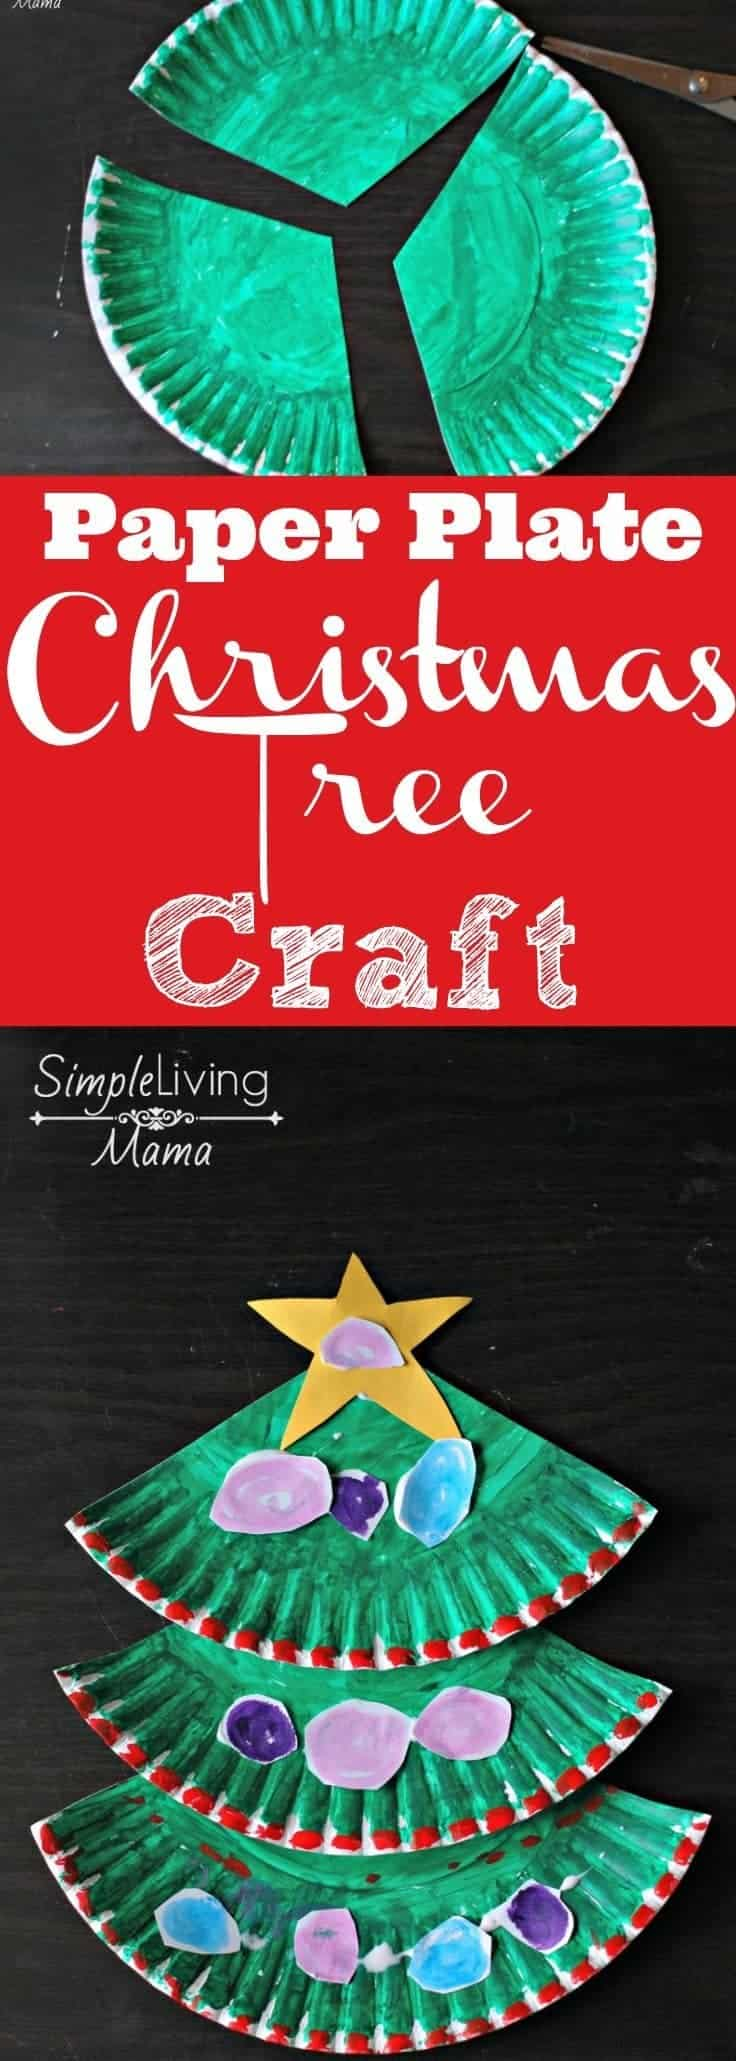 Paper plate christmas tree craft simple living mama for Free christmas crafts for kids